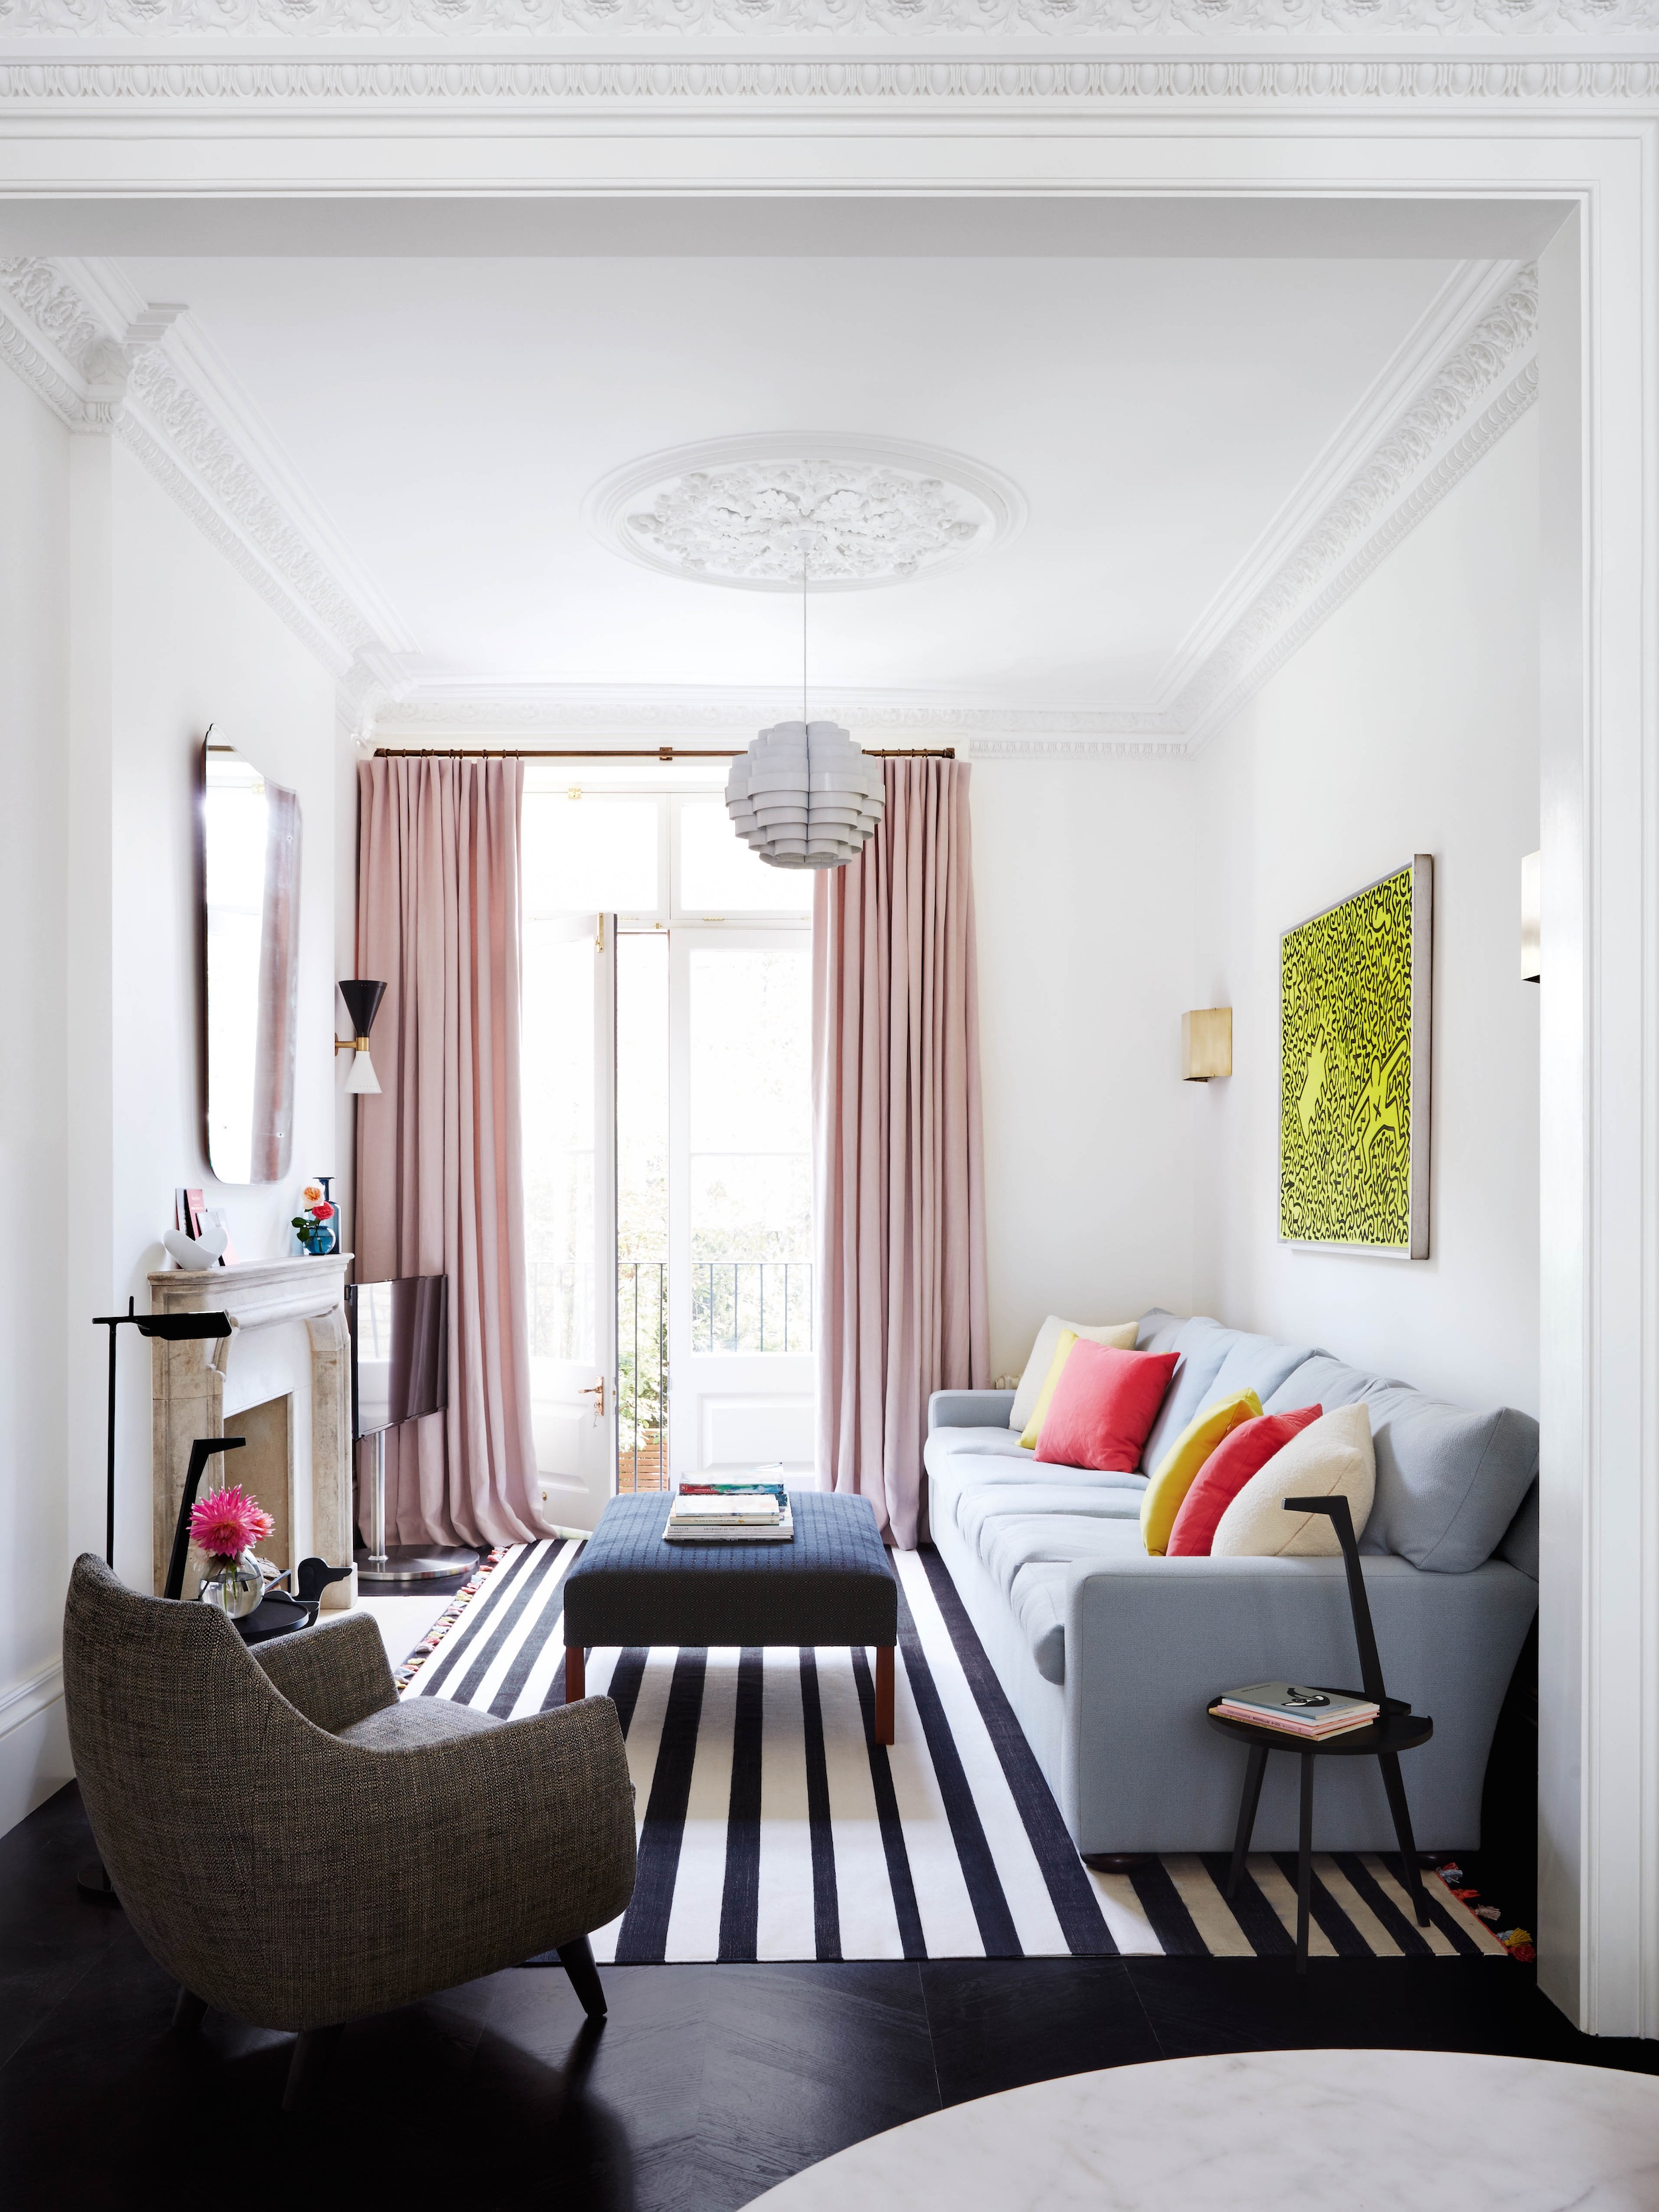 small living room design 6. a style marriage RQUPSTQ